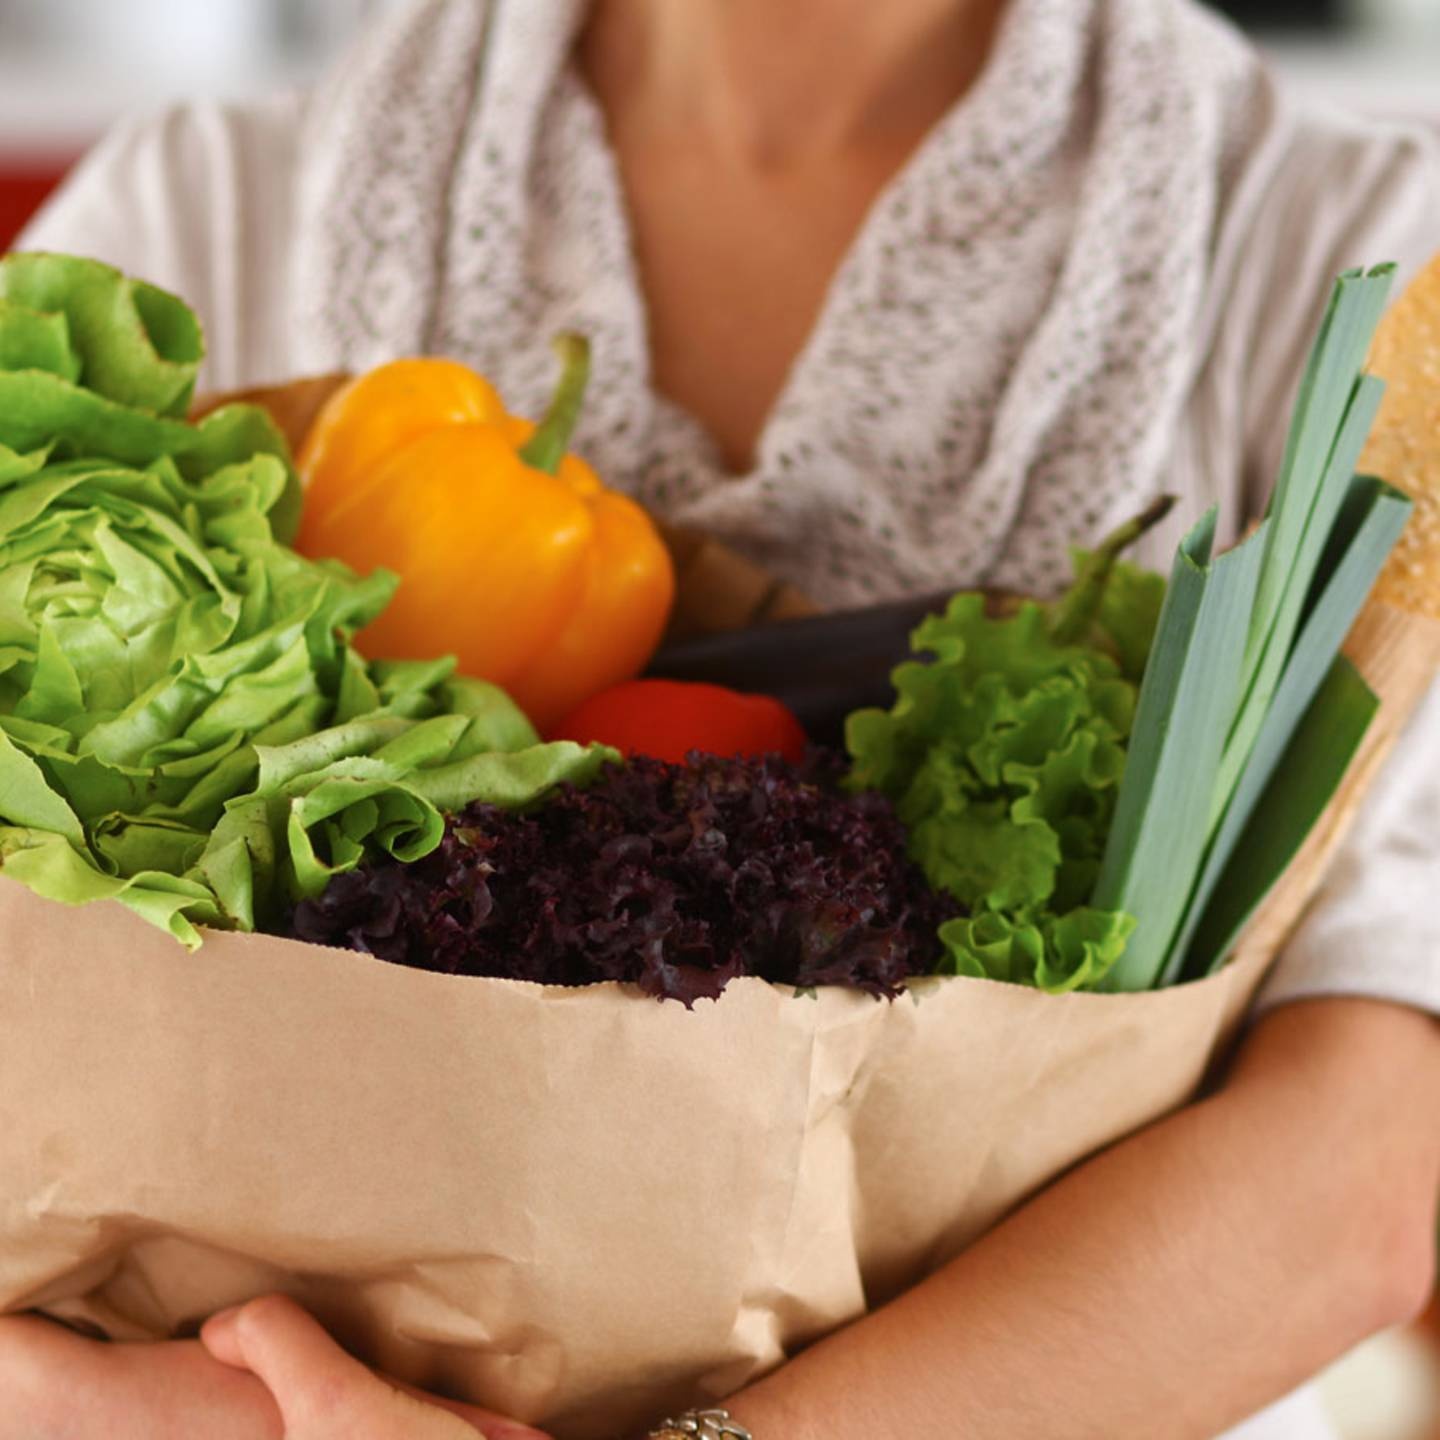 Stop food waste: The 4 most common waste traps in your kitchen